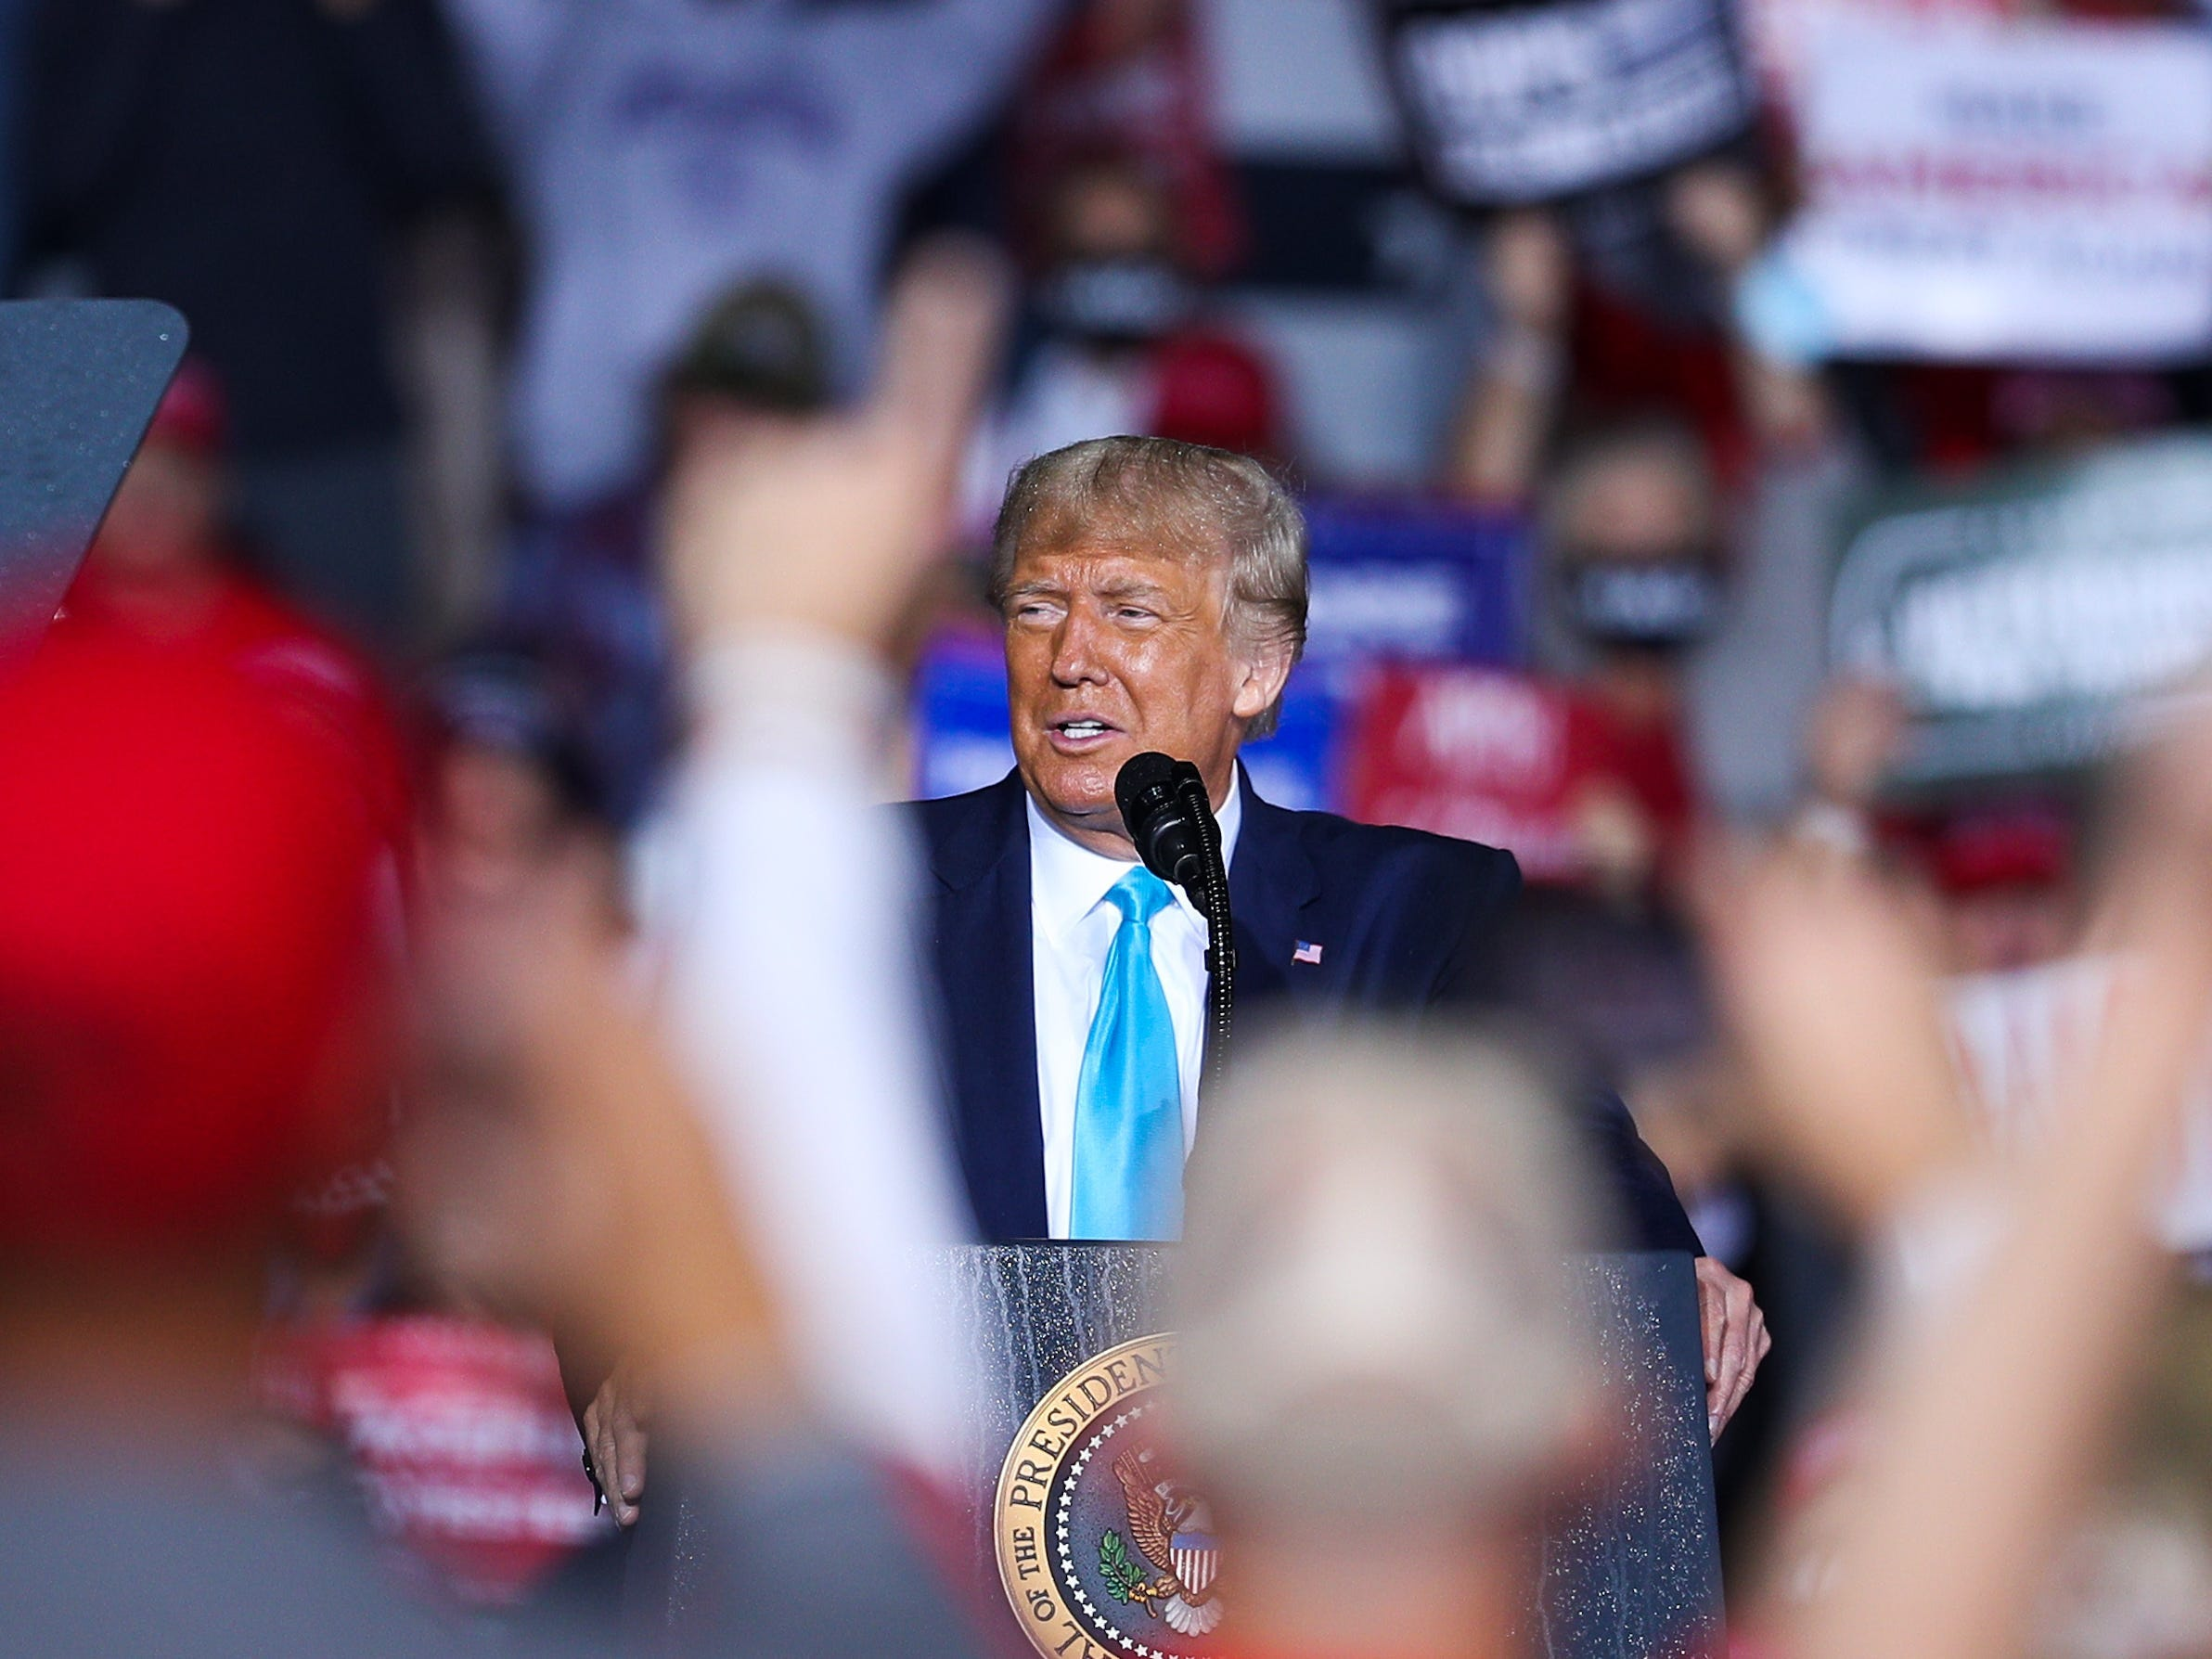 The Trump marketing campaign is waging an all-out moral battle to dwell the expansion of vote-by-mail in 7 diverse states